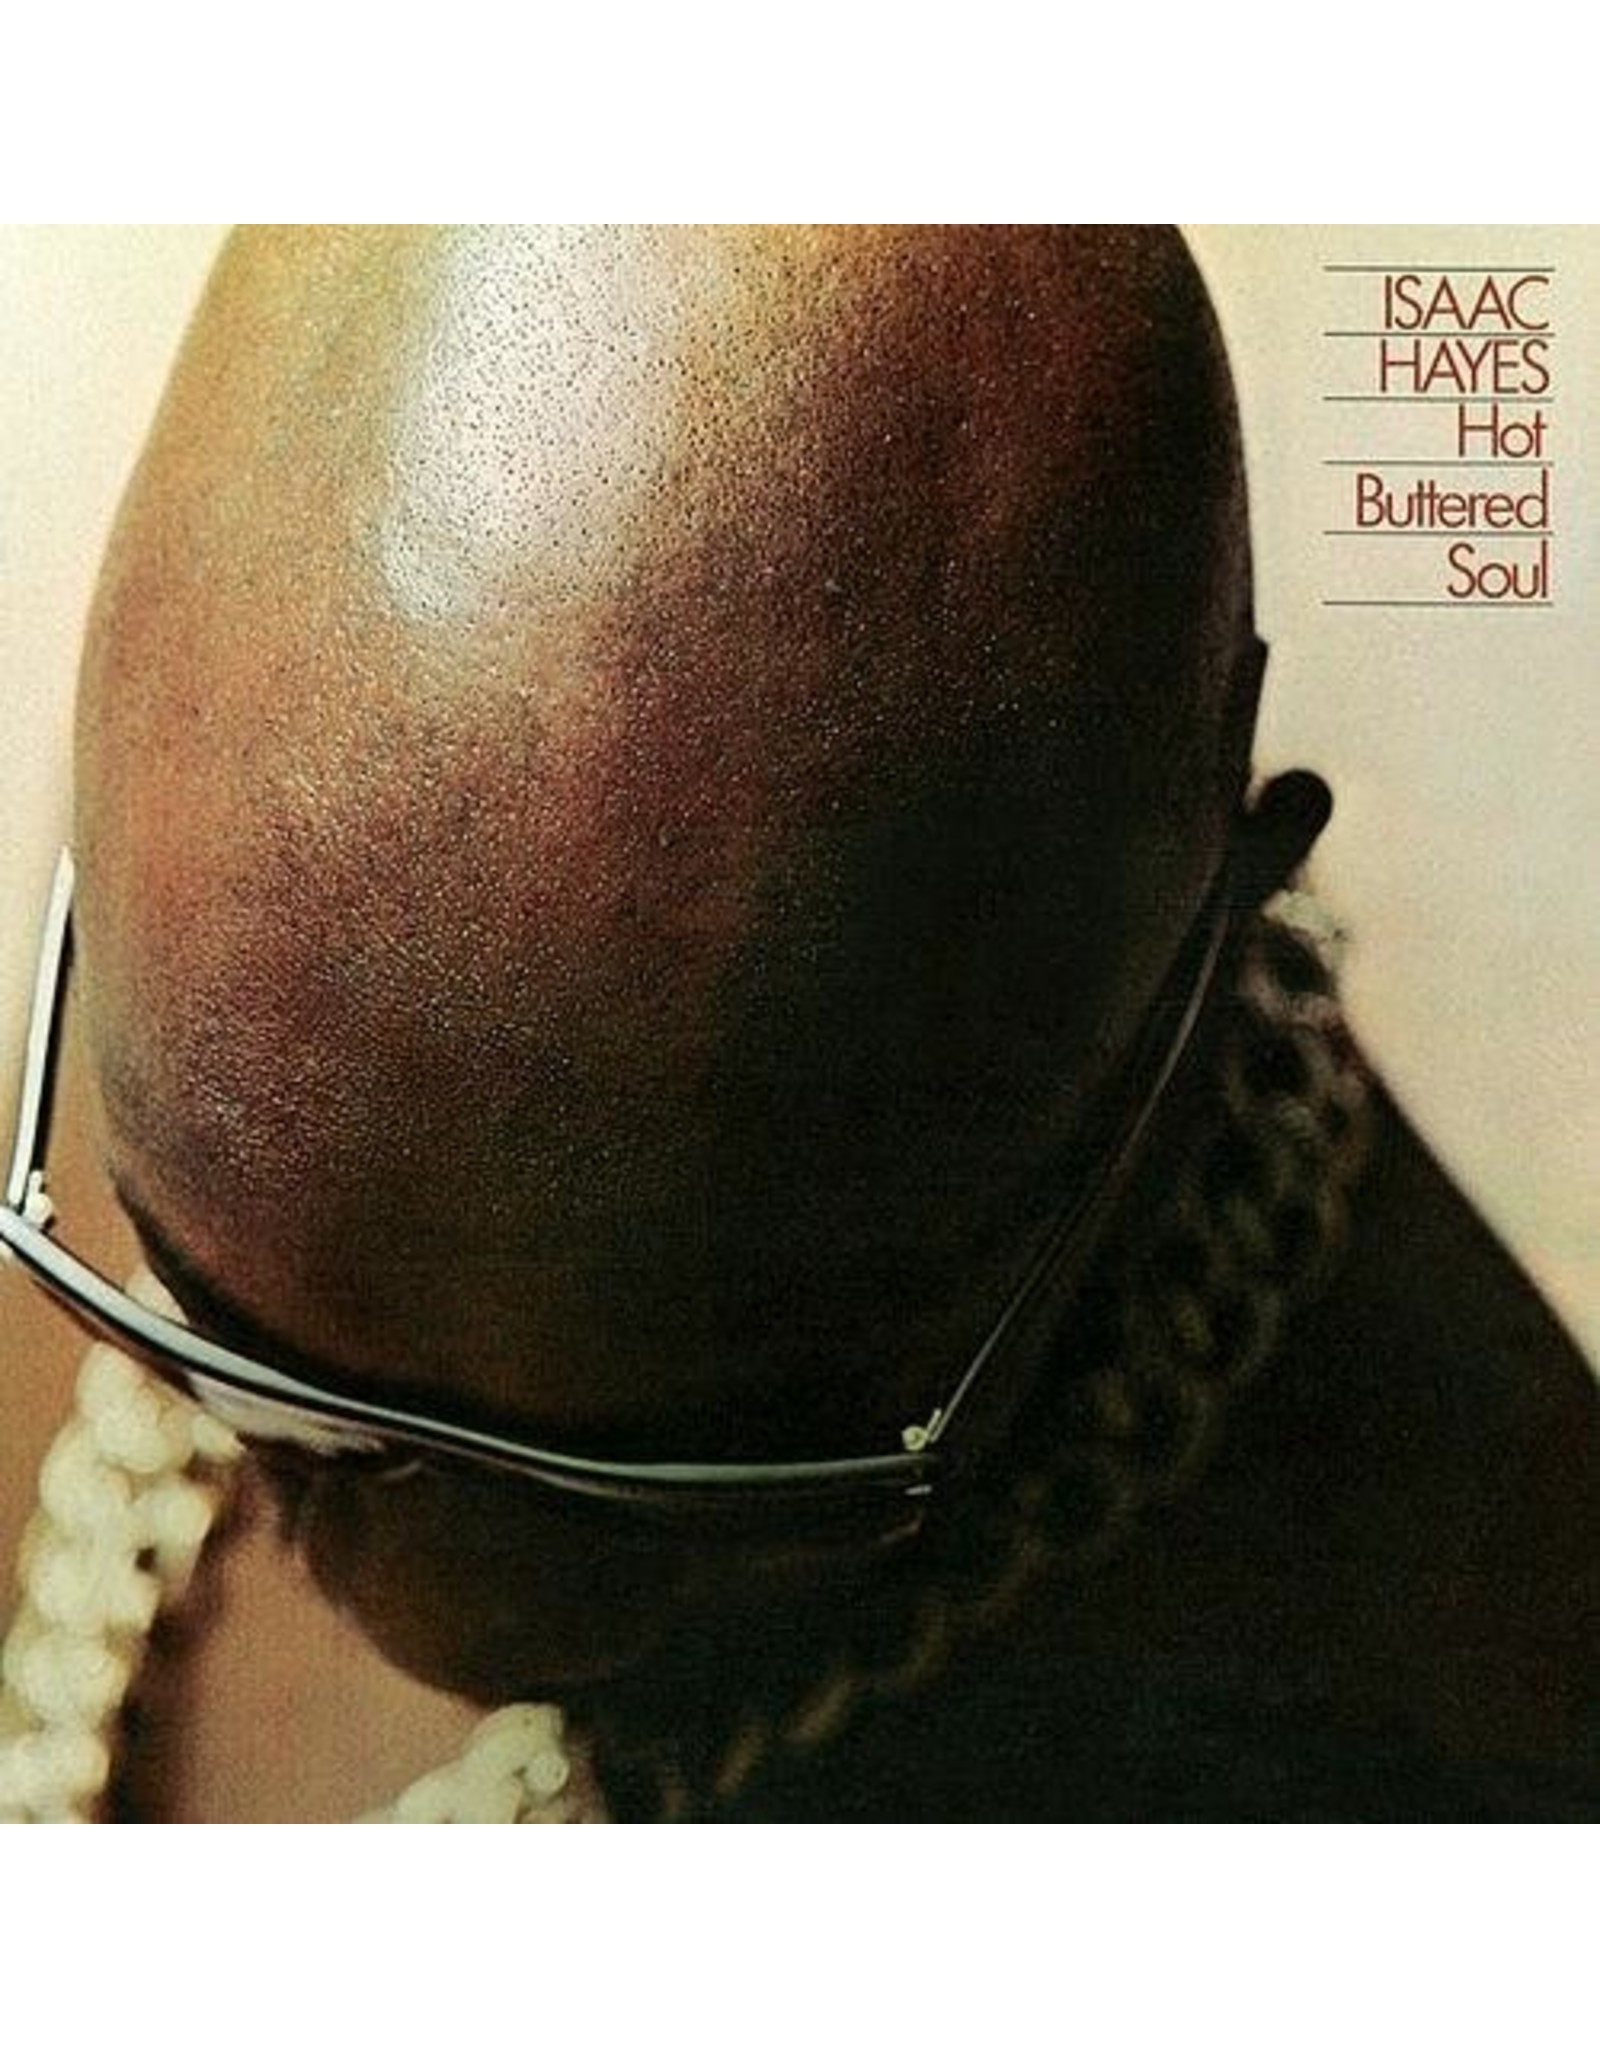 New Vinyl Isaac Hayes - Hot Buttered Soul LP